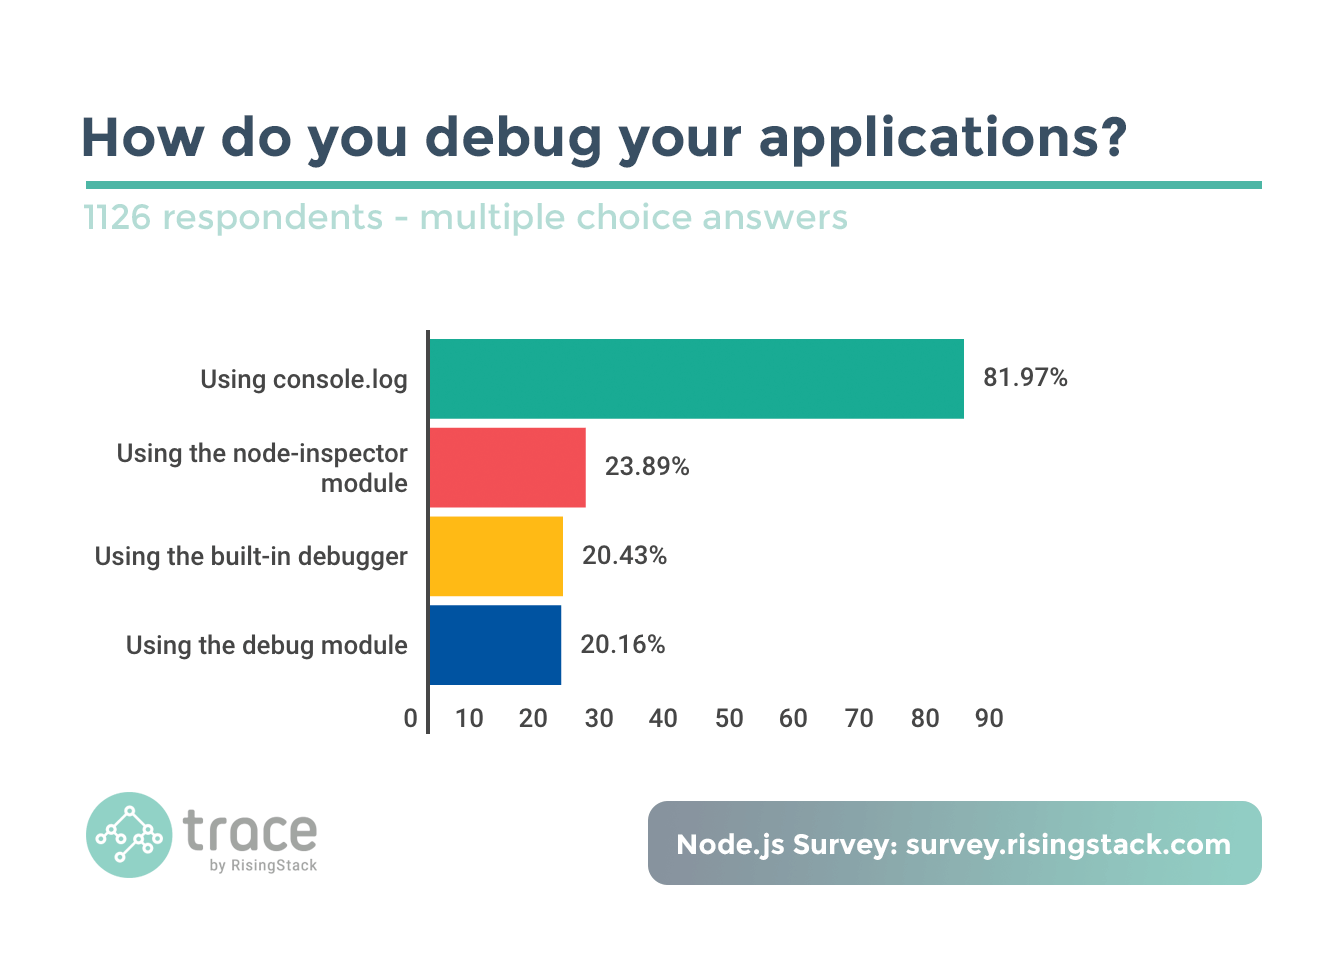 Node.js Survey - How do you debug your applications? Using the console.log